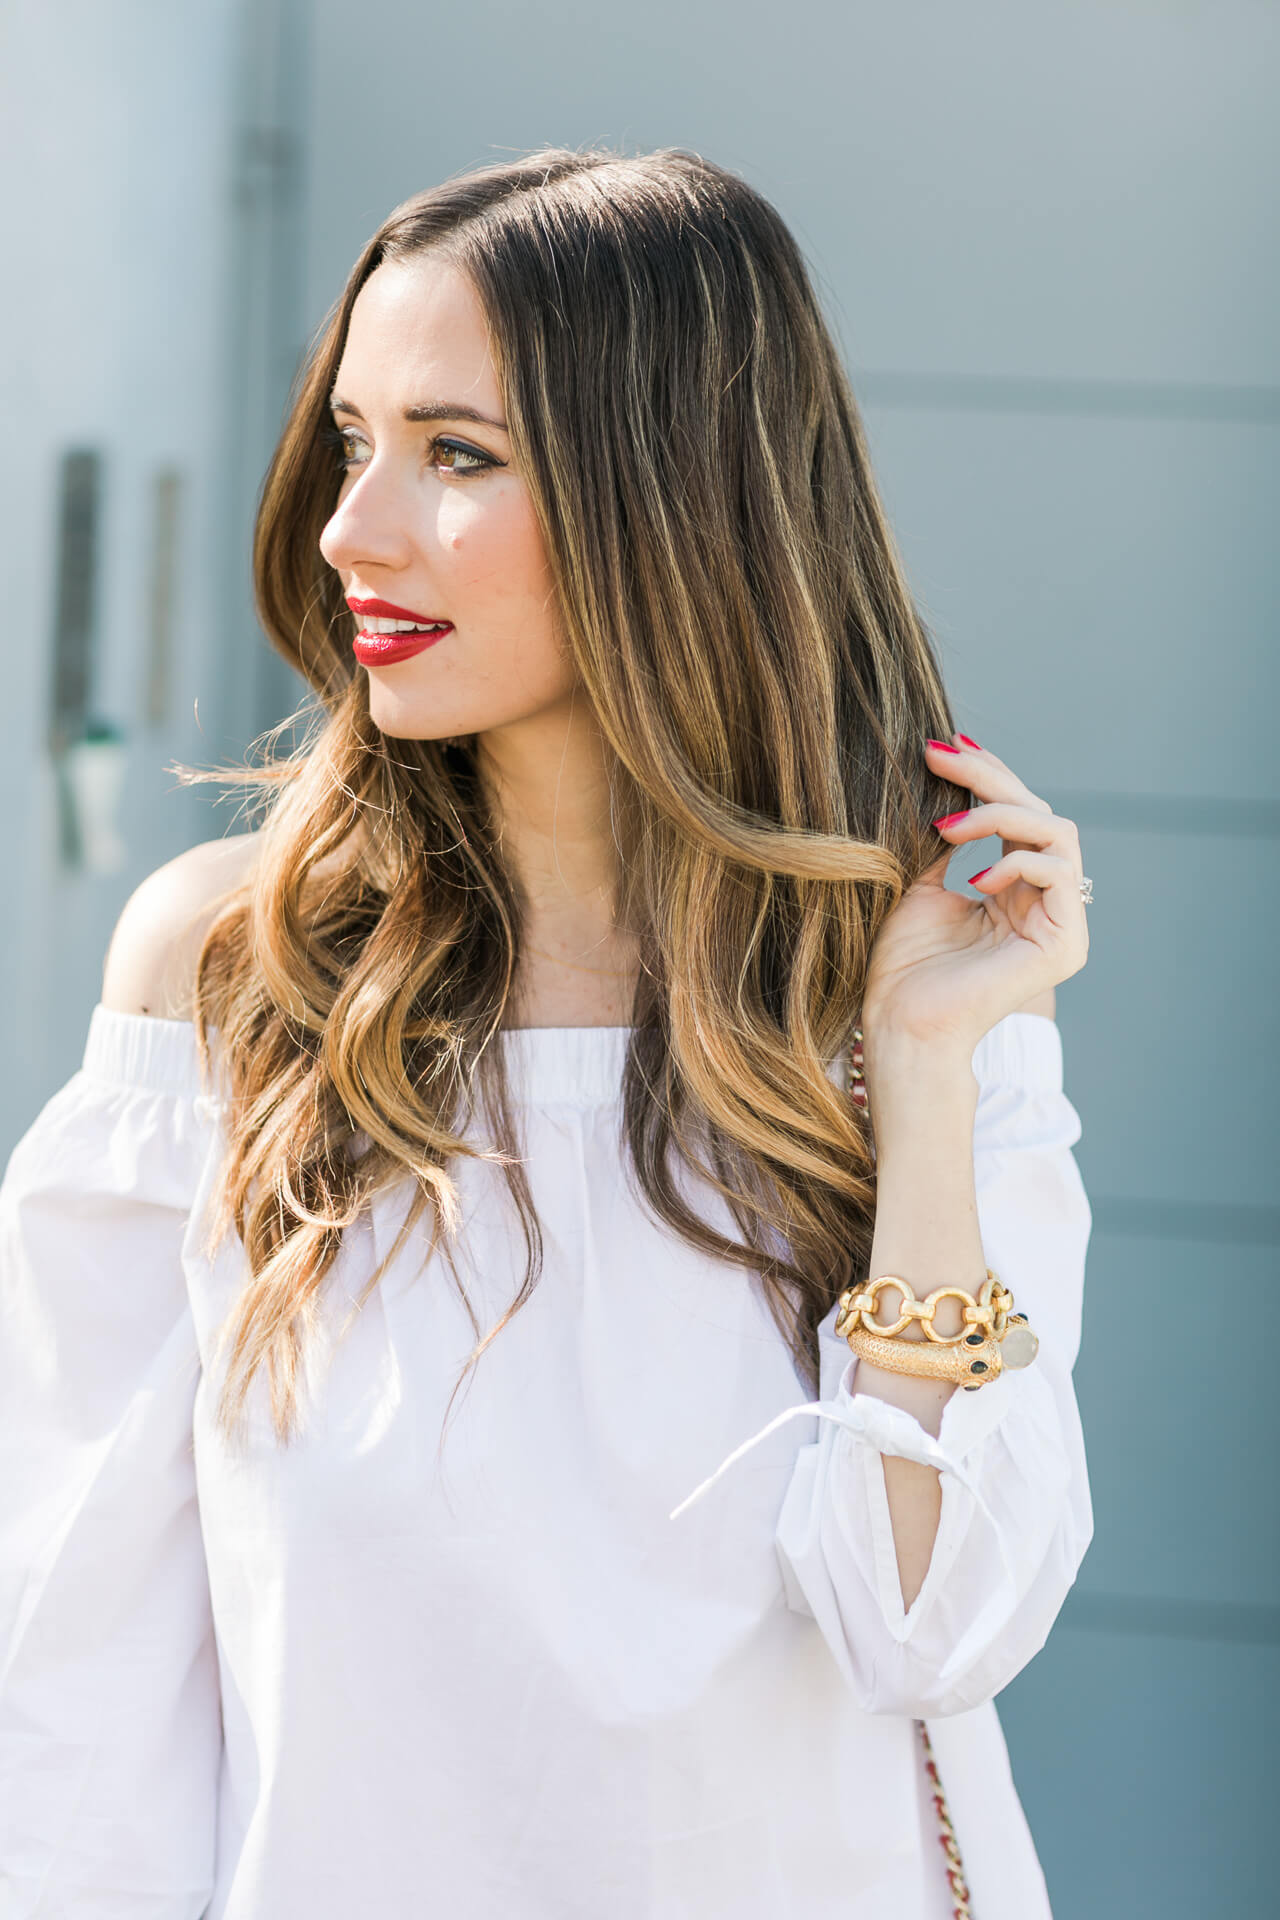 love this white off the shoulder top with tie detail on the sleeves